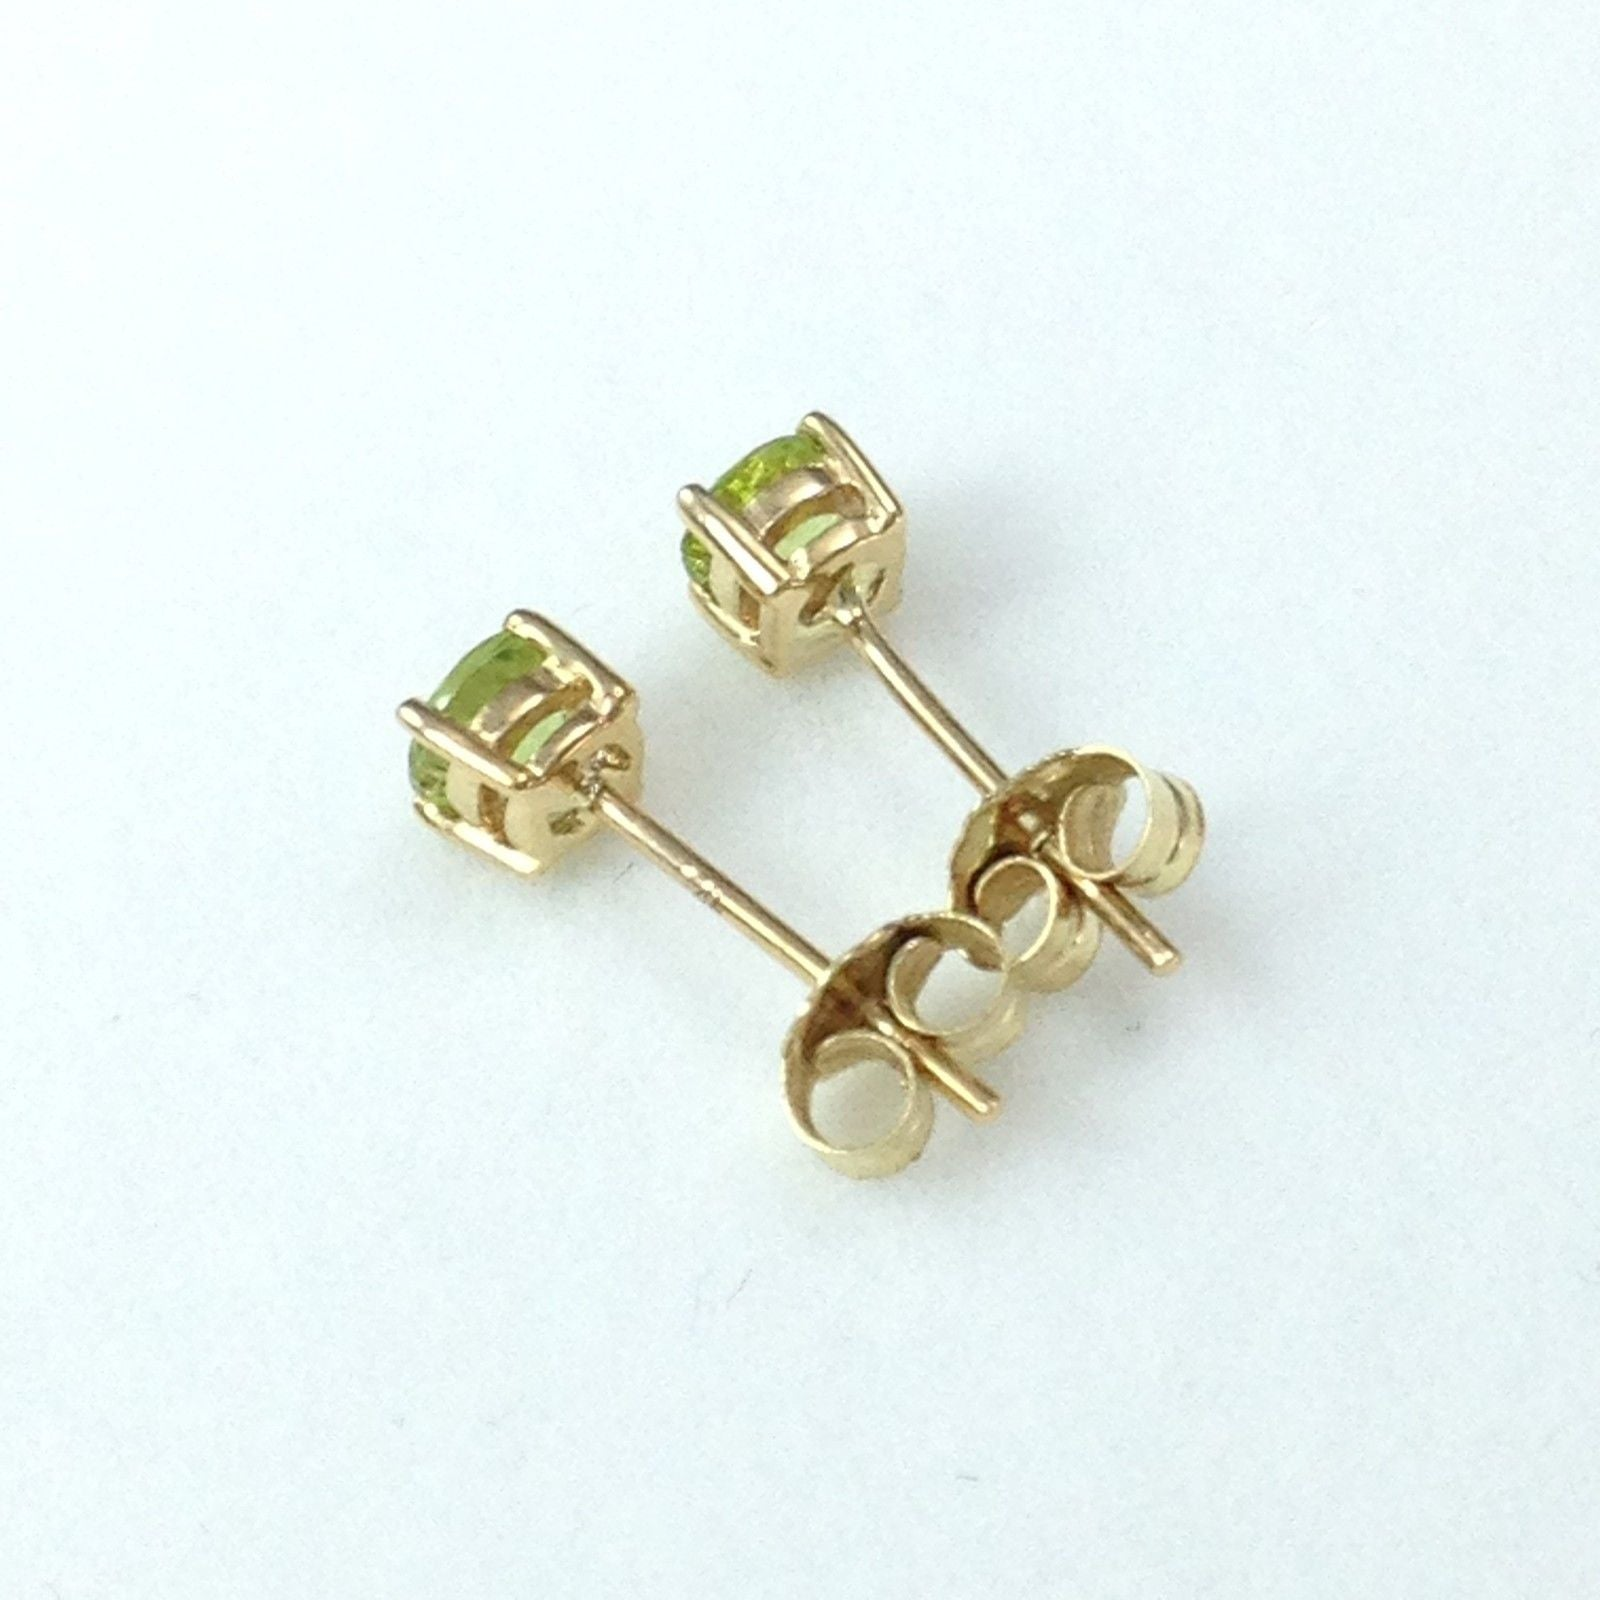 Genuine Peridot Earrings 4mm 0.8 cttw 14K Yellow Gold  NWT $344